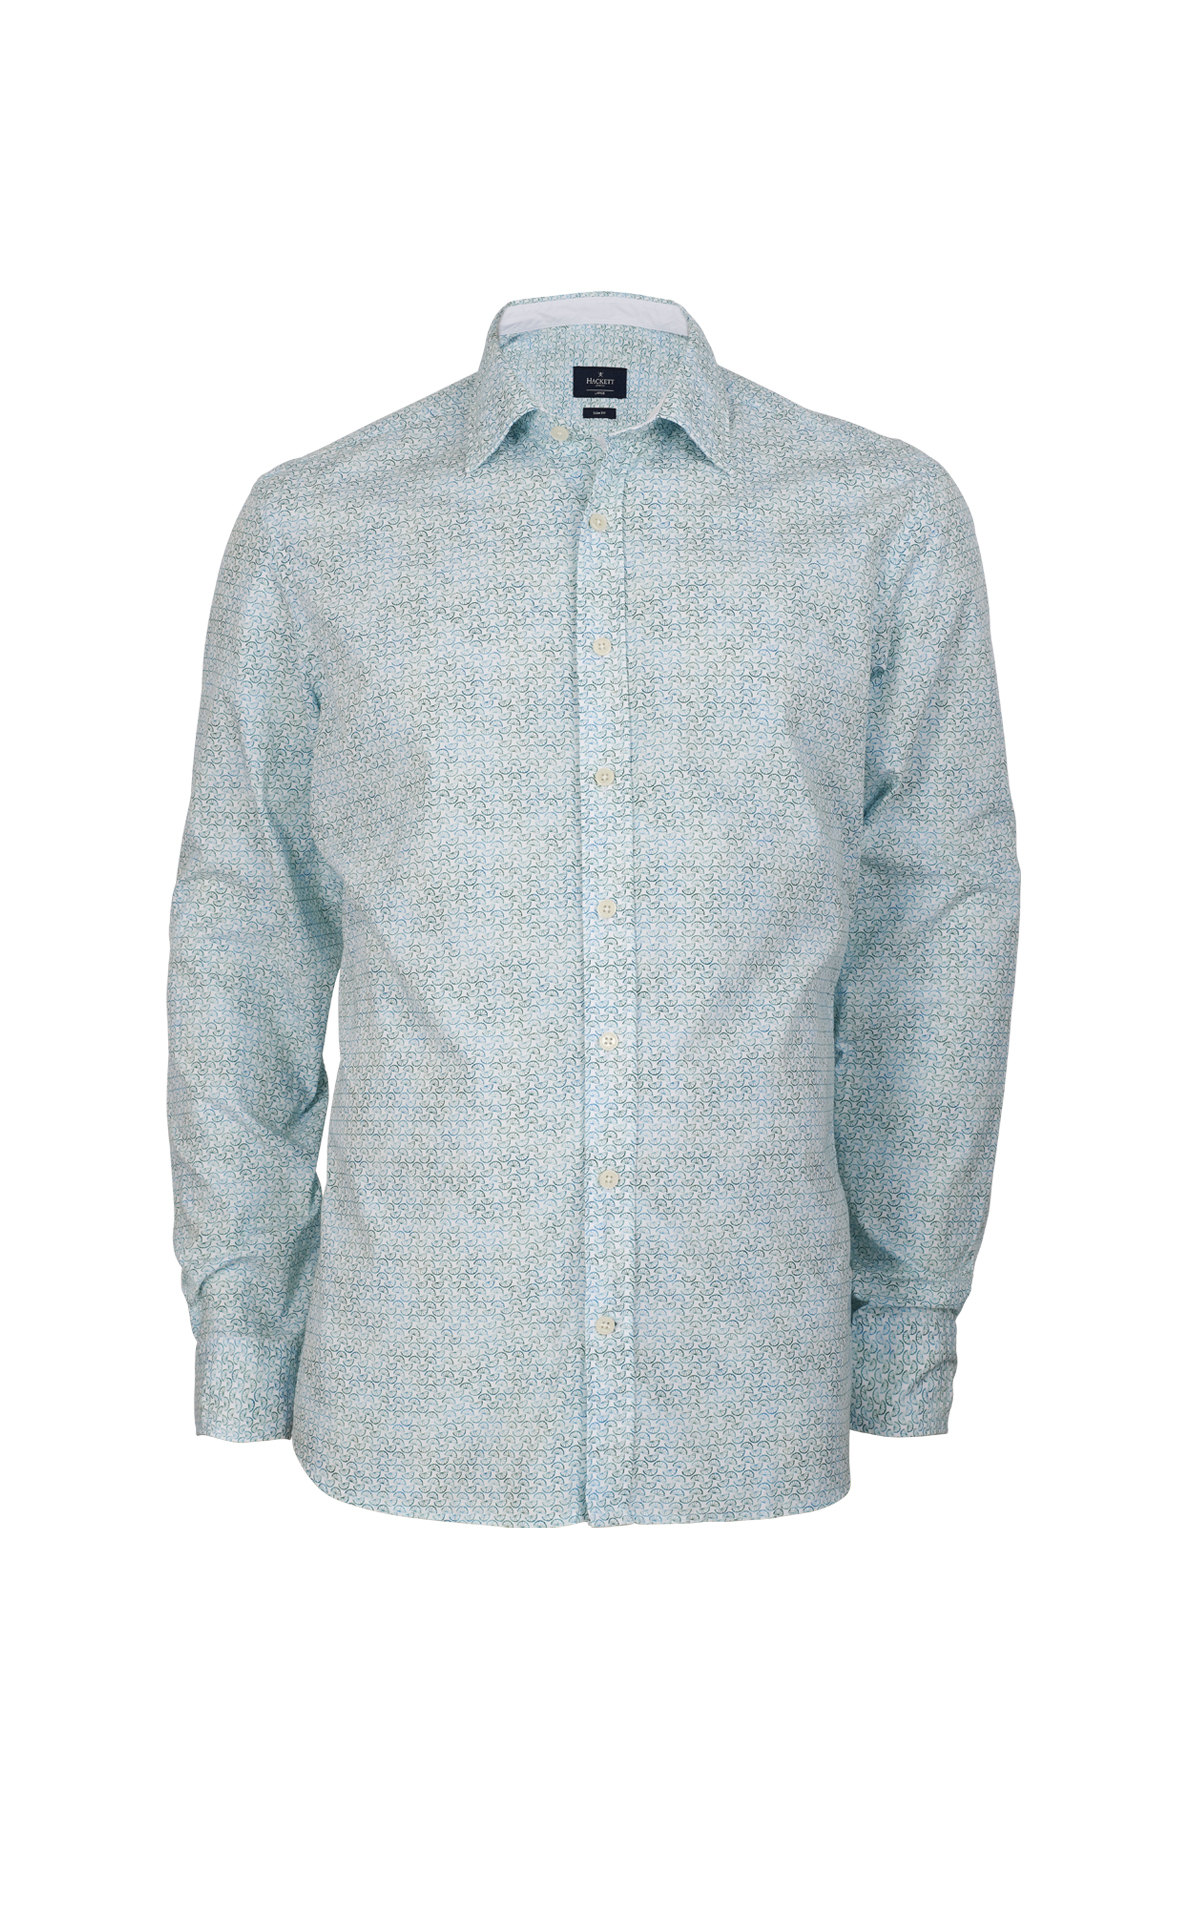 Citrus print shirt  Hackett London